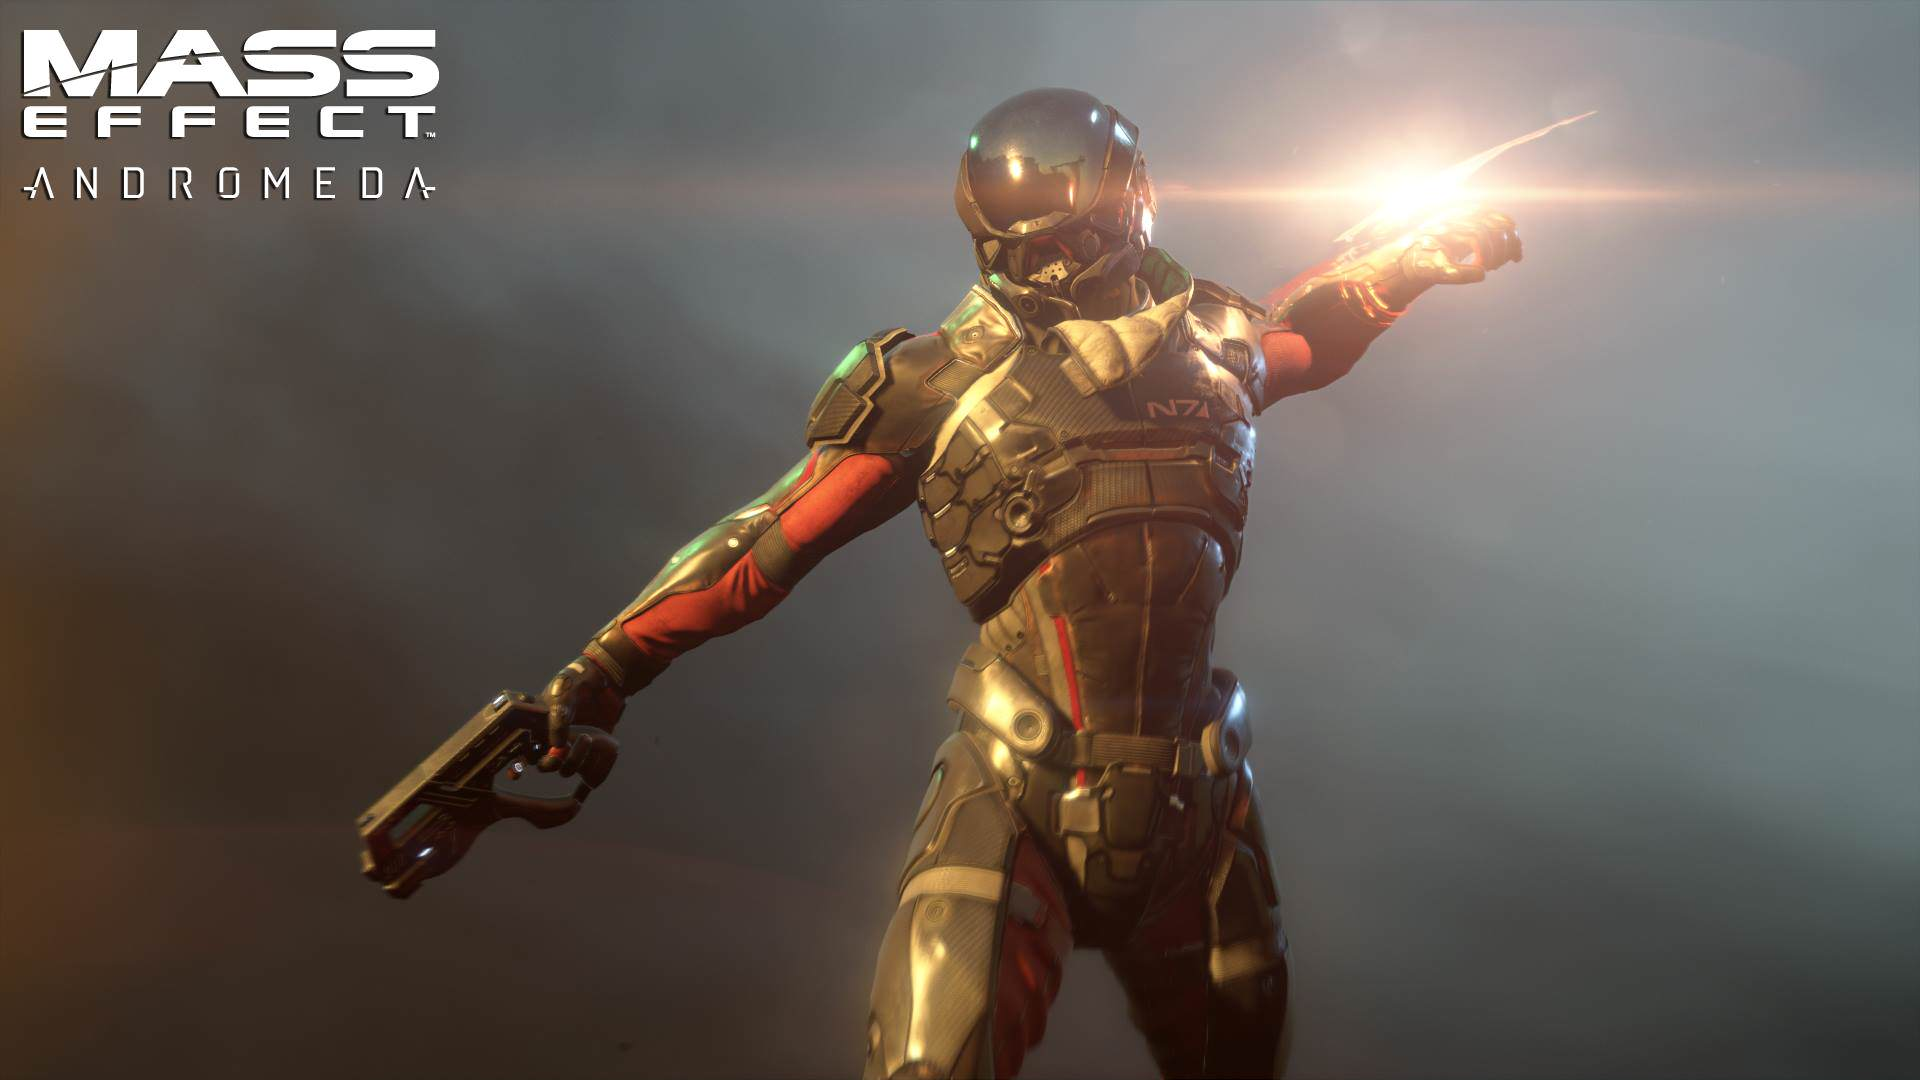 Awesome Mass Effect Andromeda Gameplay Footage Leaks mass effect andromeda e3 trailer 2